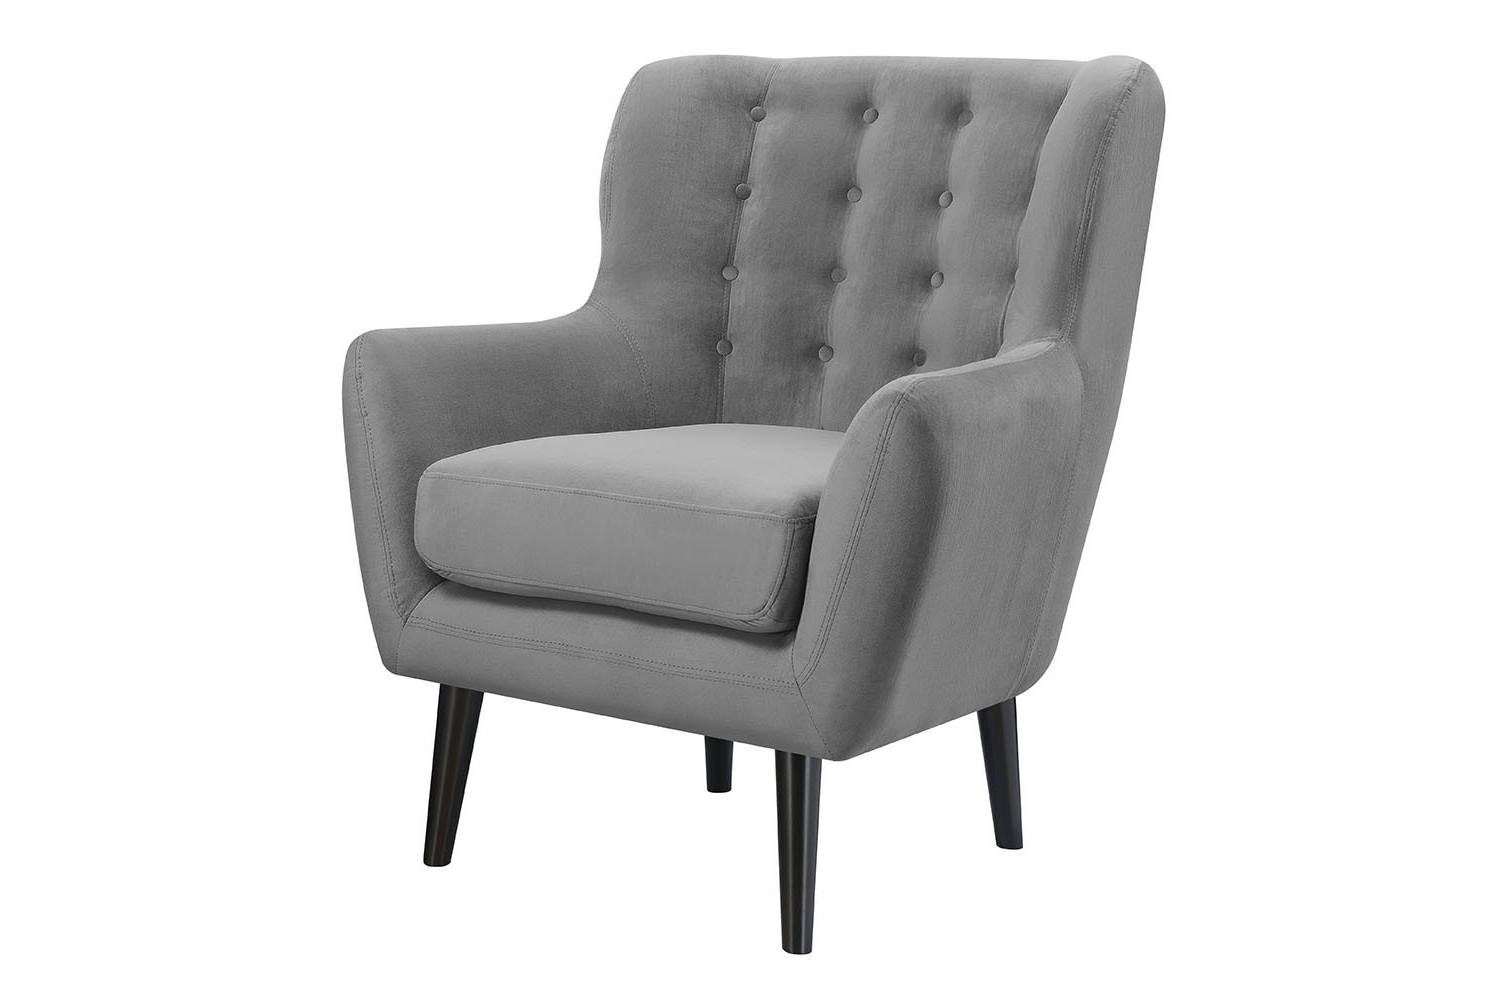 Lucy Dark Grey Sofa Chairs With Newest Accent Chairs (View 17 of 20)